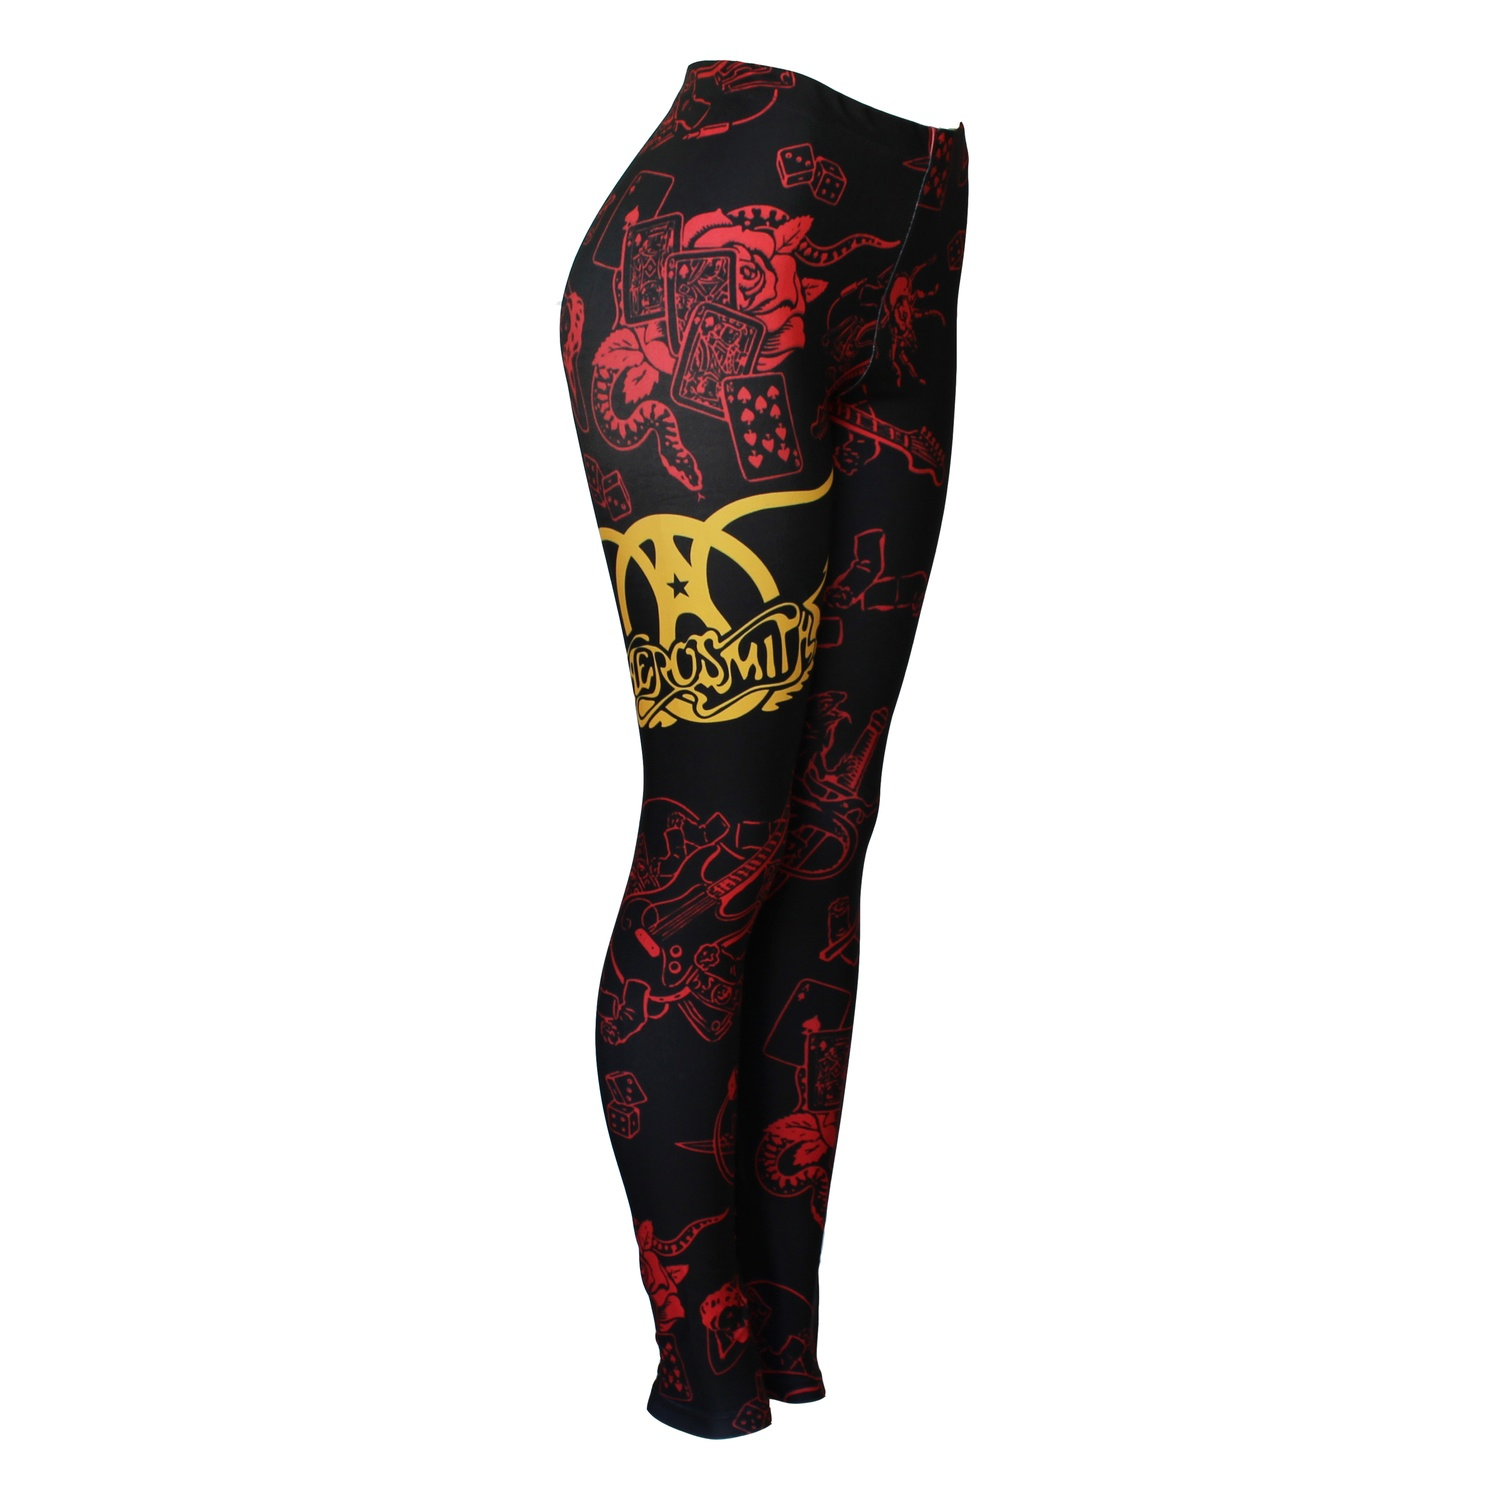 Calça Legging Feminina Aerosmith - Bloody Hell Wear